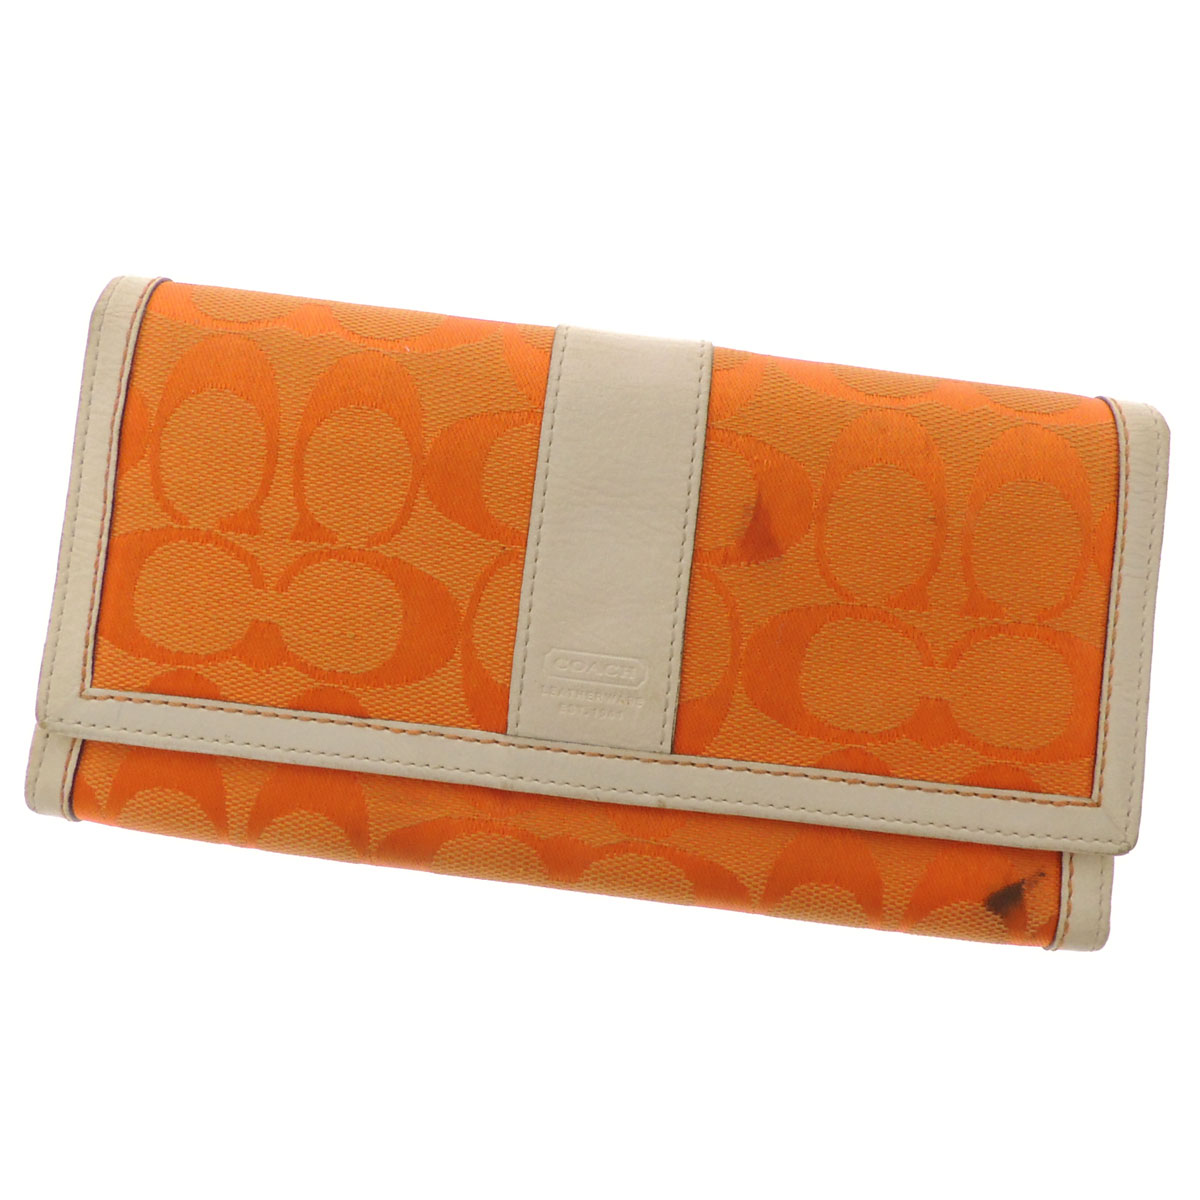 COACH signature pattern logo long wallet (there is a coin purse) canvas X leather Lady's fs3gm